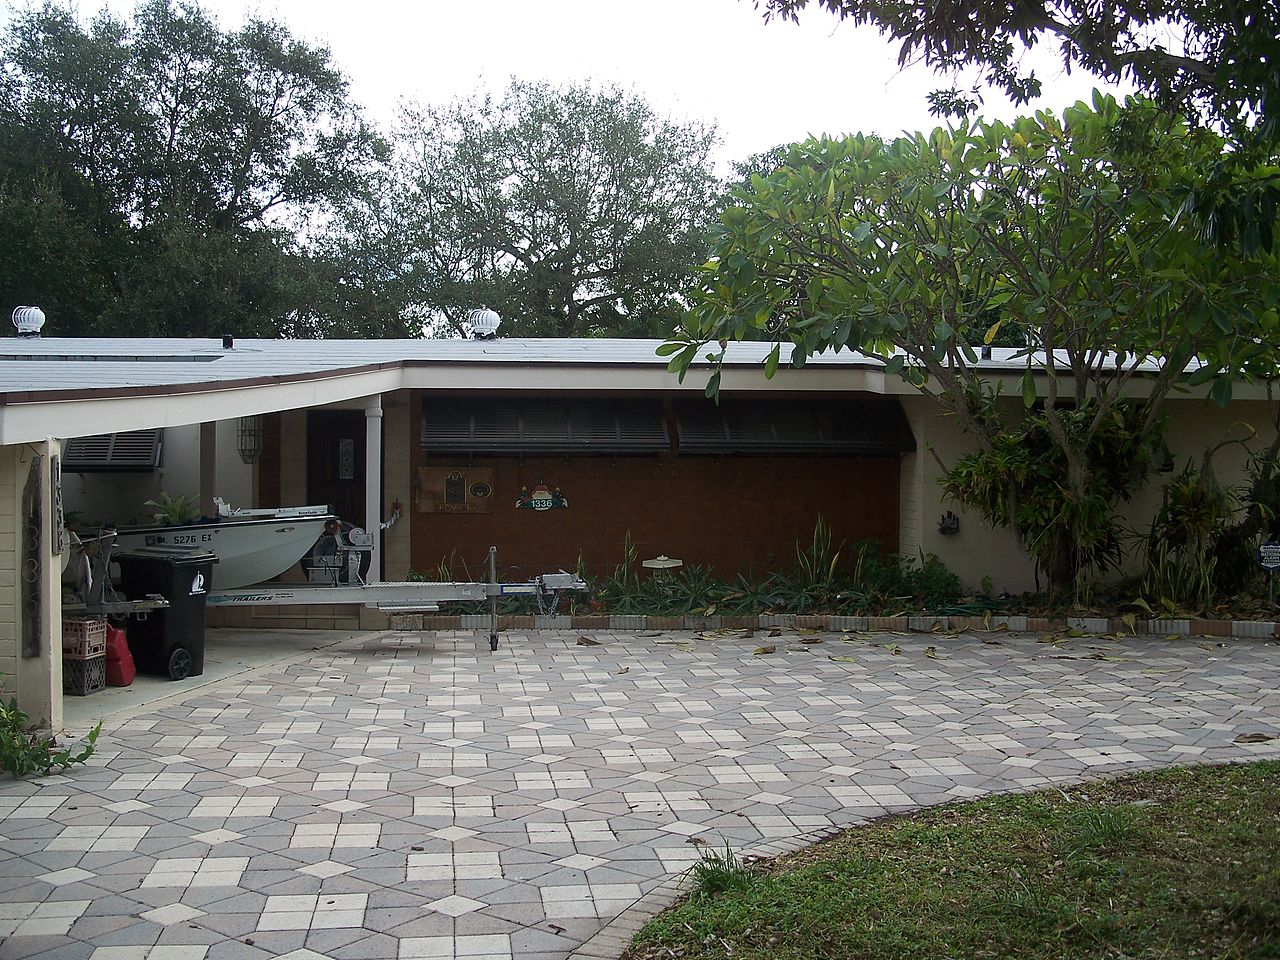 The Dr. Willard Van Orsdel King House was built in 1951 and is a fine example of Modern architecture.